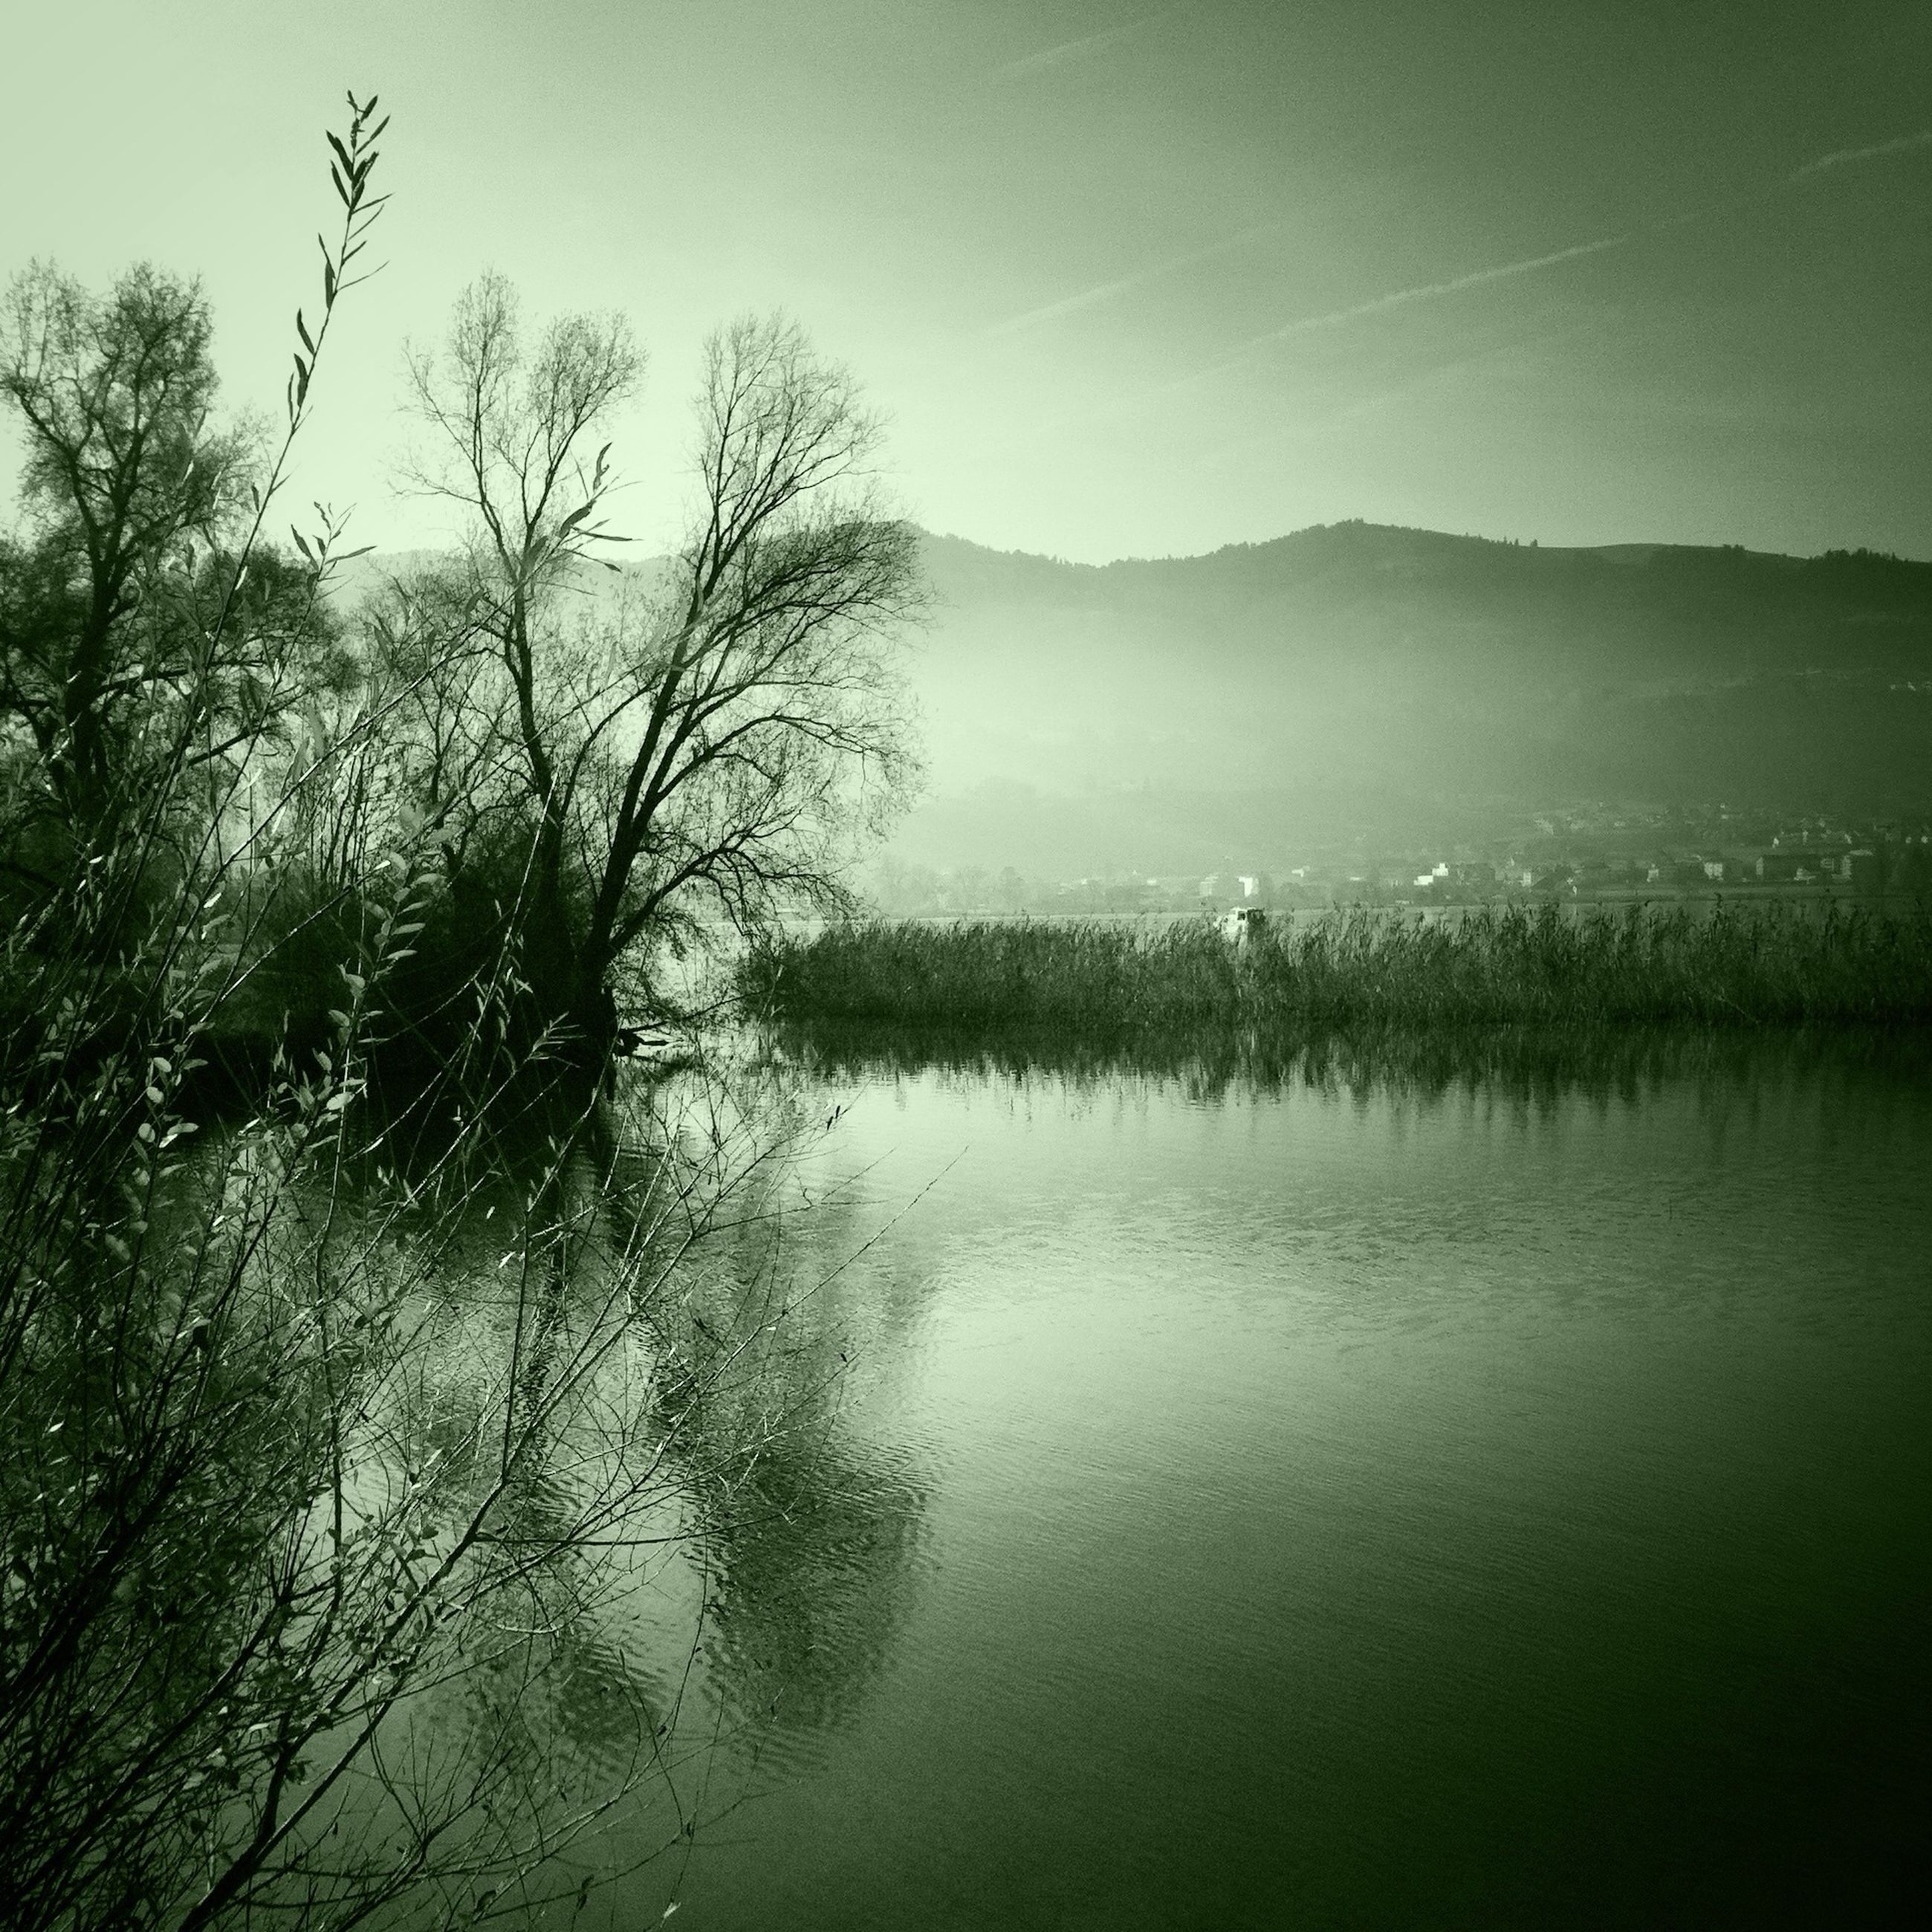 water, tranquil scene, tranquility, lake, tree, scenics, reflection, beauty in nature, waterfront, nature, mountain, bare tree, sky, branch, idyllic, river, non-urban scene, landscape, calm, countryside